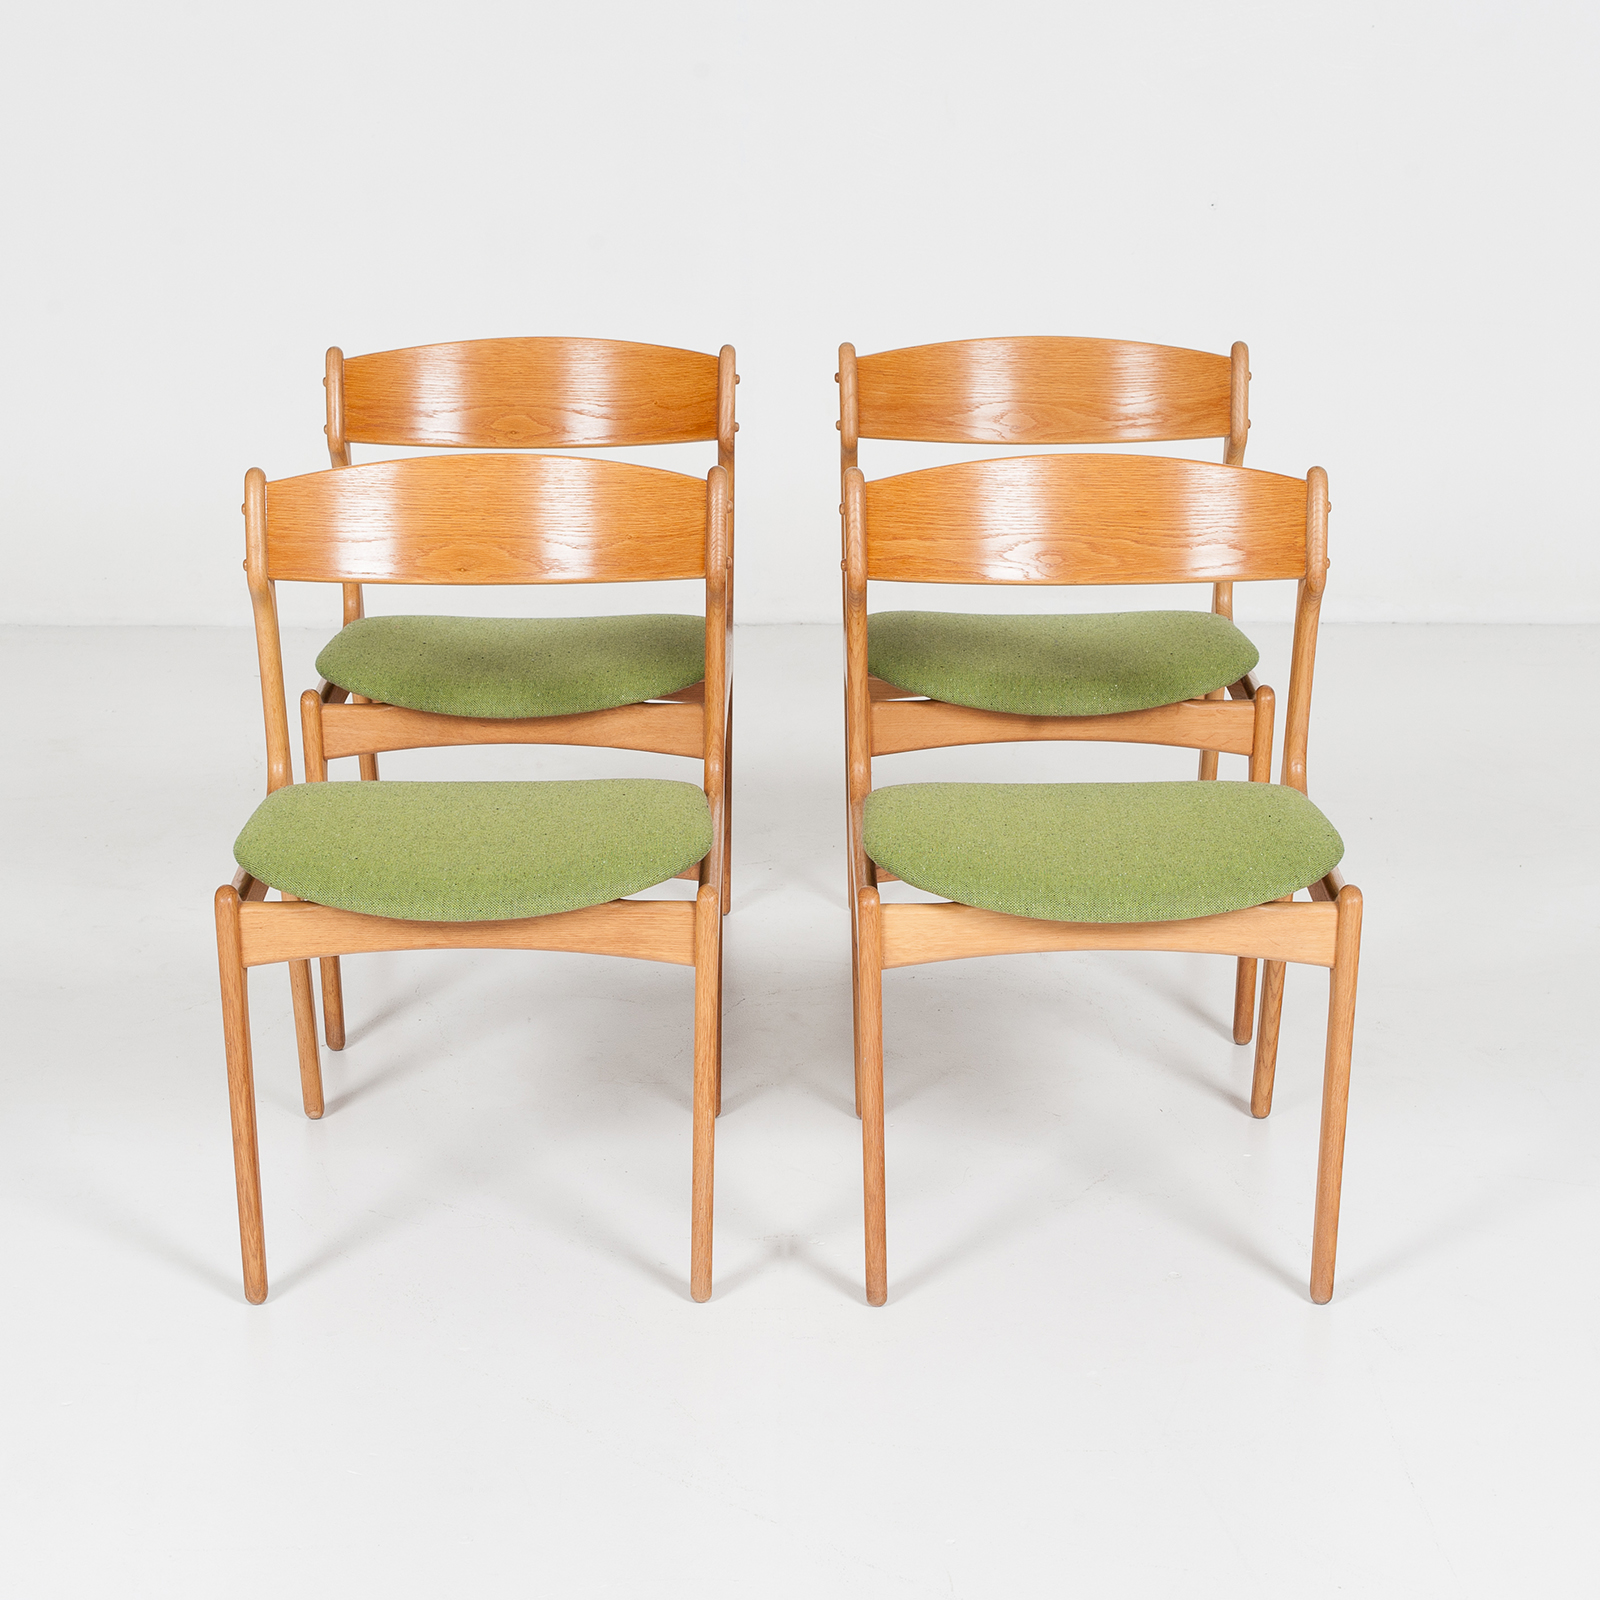 Set Of Four Dining Chairs By Erik Buch For O.d. Mobler In Oak And Green Upholstery, 1960s, Denmark88